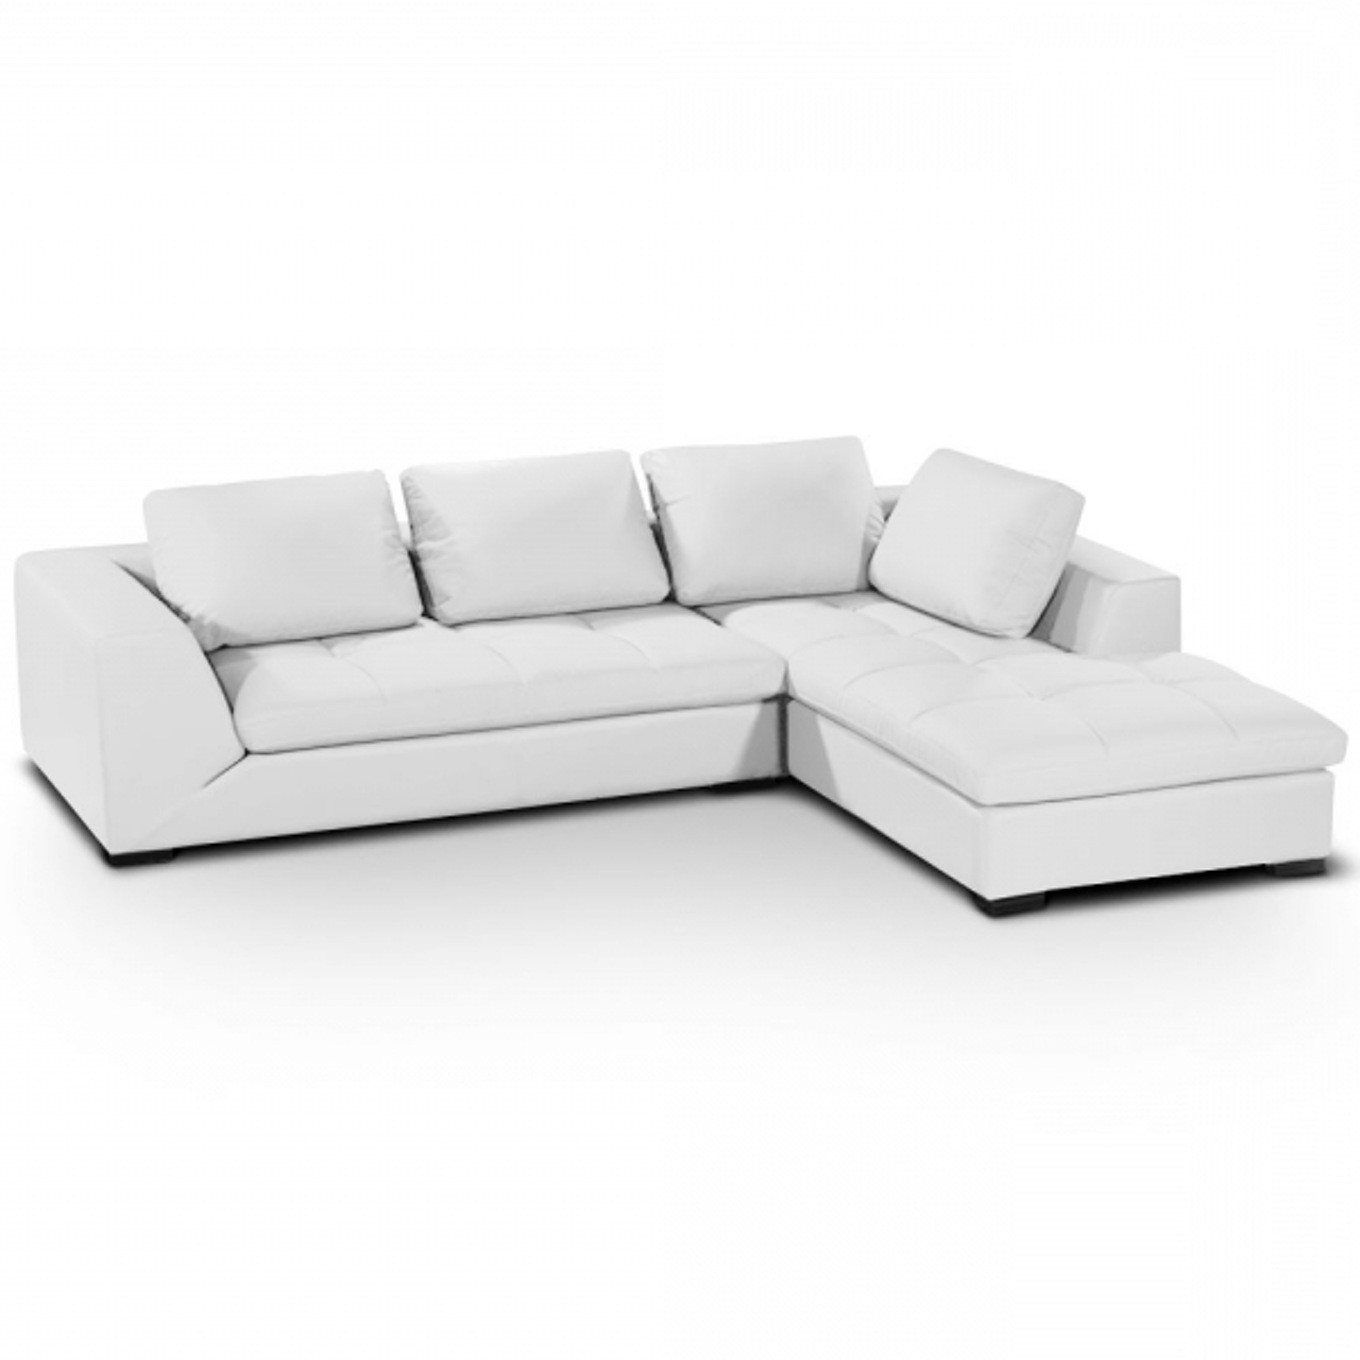 Salon ikea cuir ikea salon en cuir u dijon u laque photo - Ikea canape en cuir ...